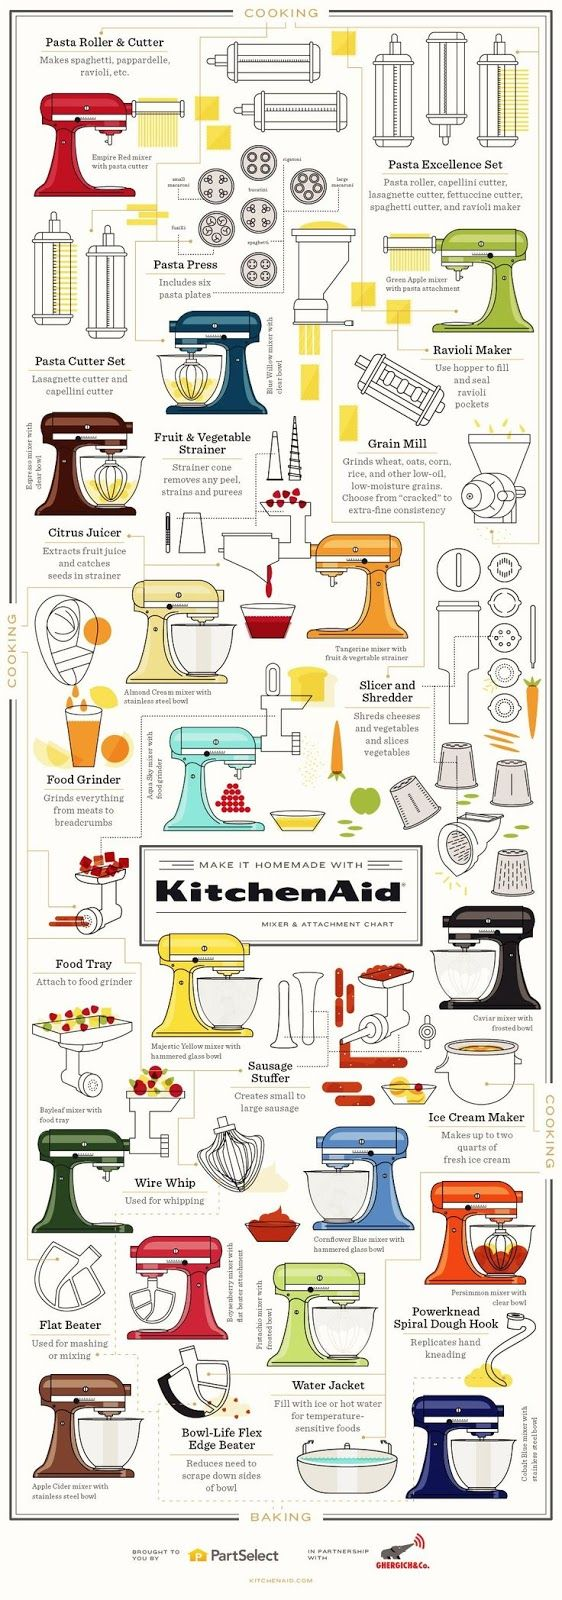 25 best ideas about Kitchenaid mixer accessories on Pinterest